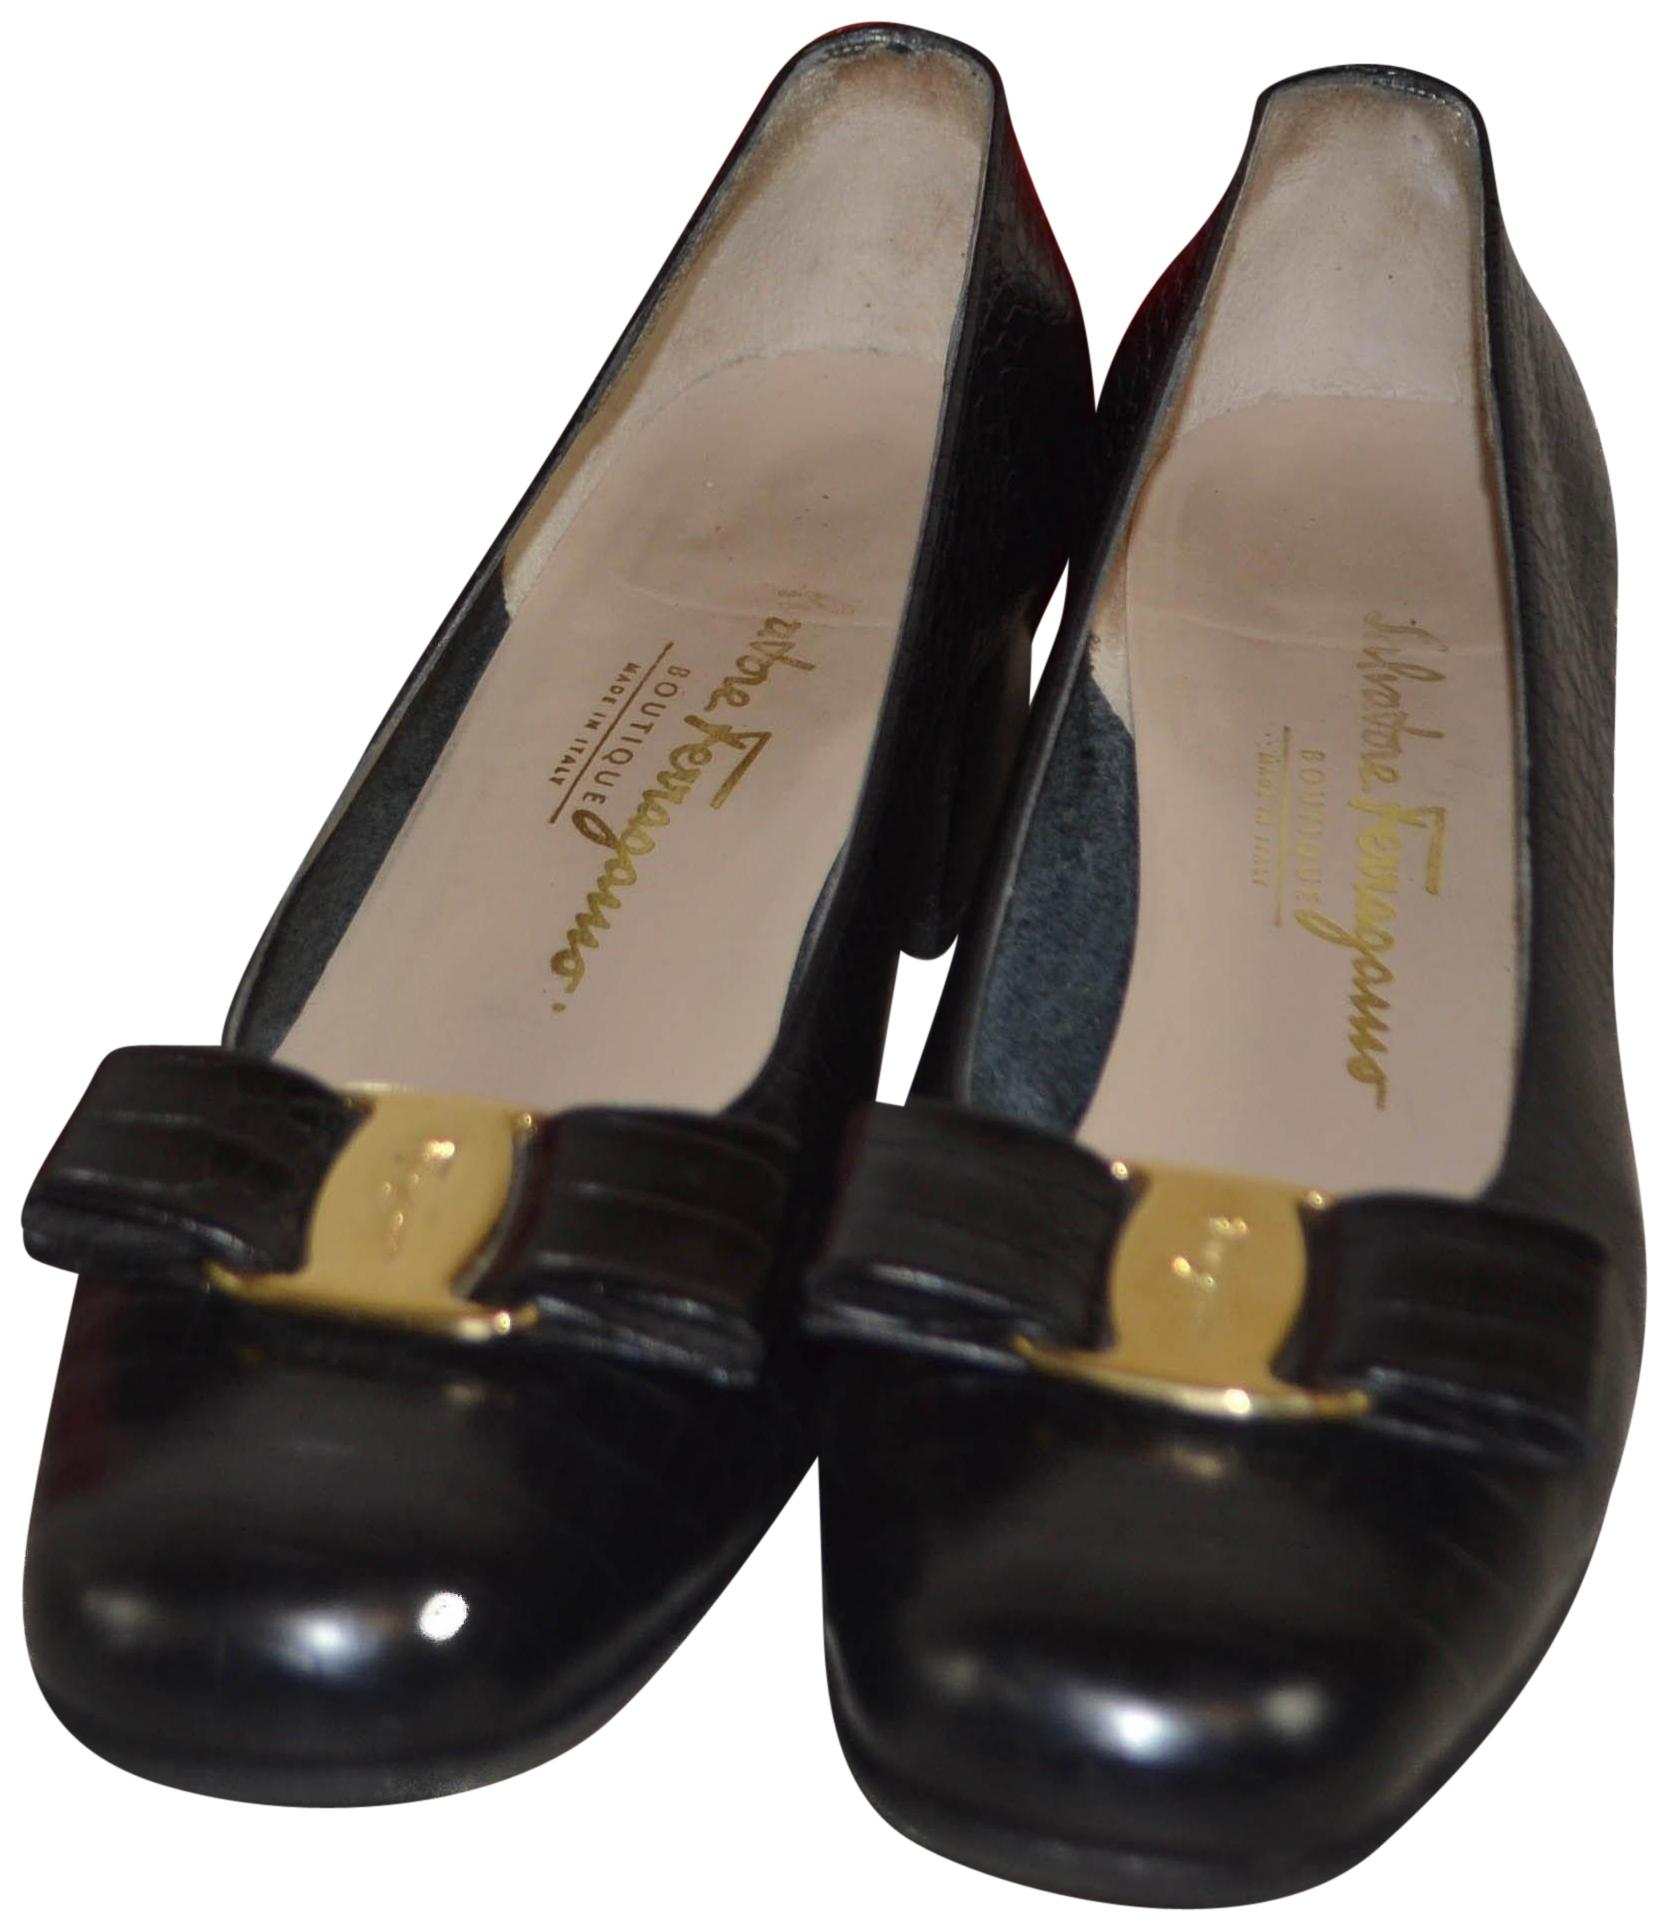 sale Manchester outlet good selling Salvatore Ferragamo Vara Bow Embossed Pumps pay with visa sale online clearance store cheap online supply for sale 1vbQr